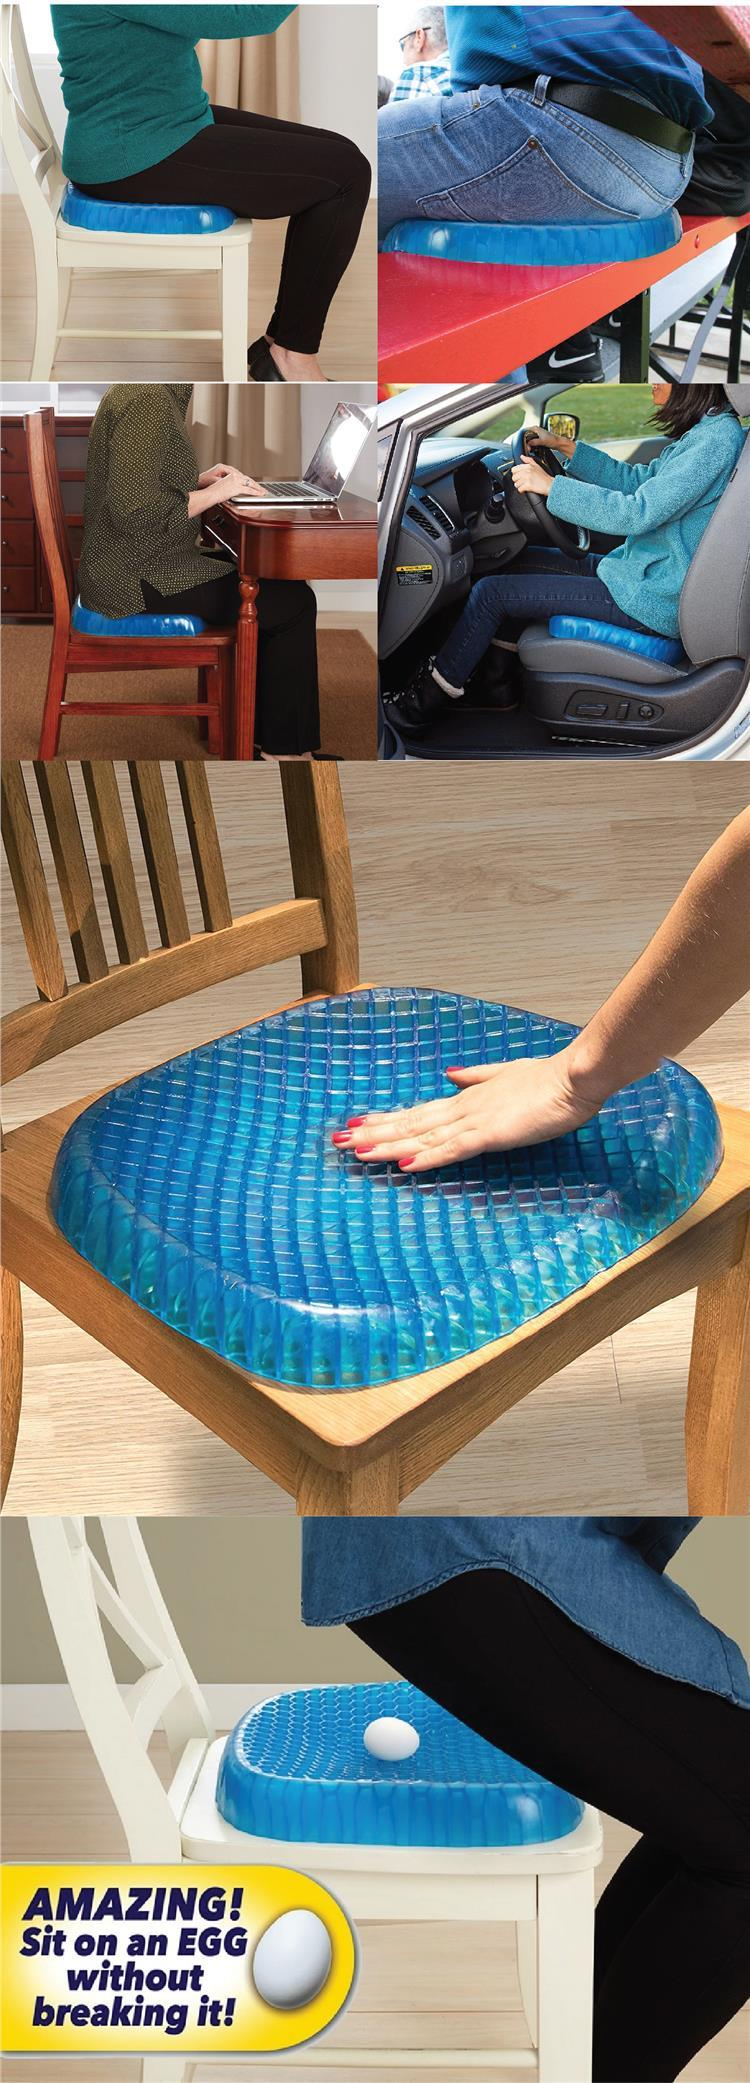 Egg Sitter Support Cushion Gel Seat Breathable Non-Slip Pain Relief